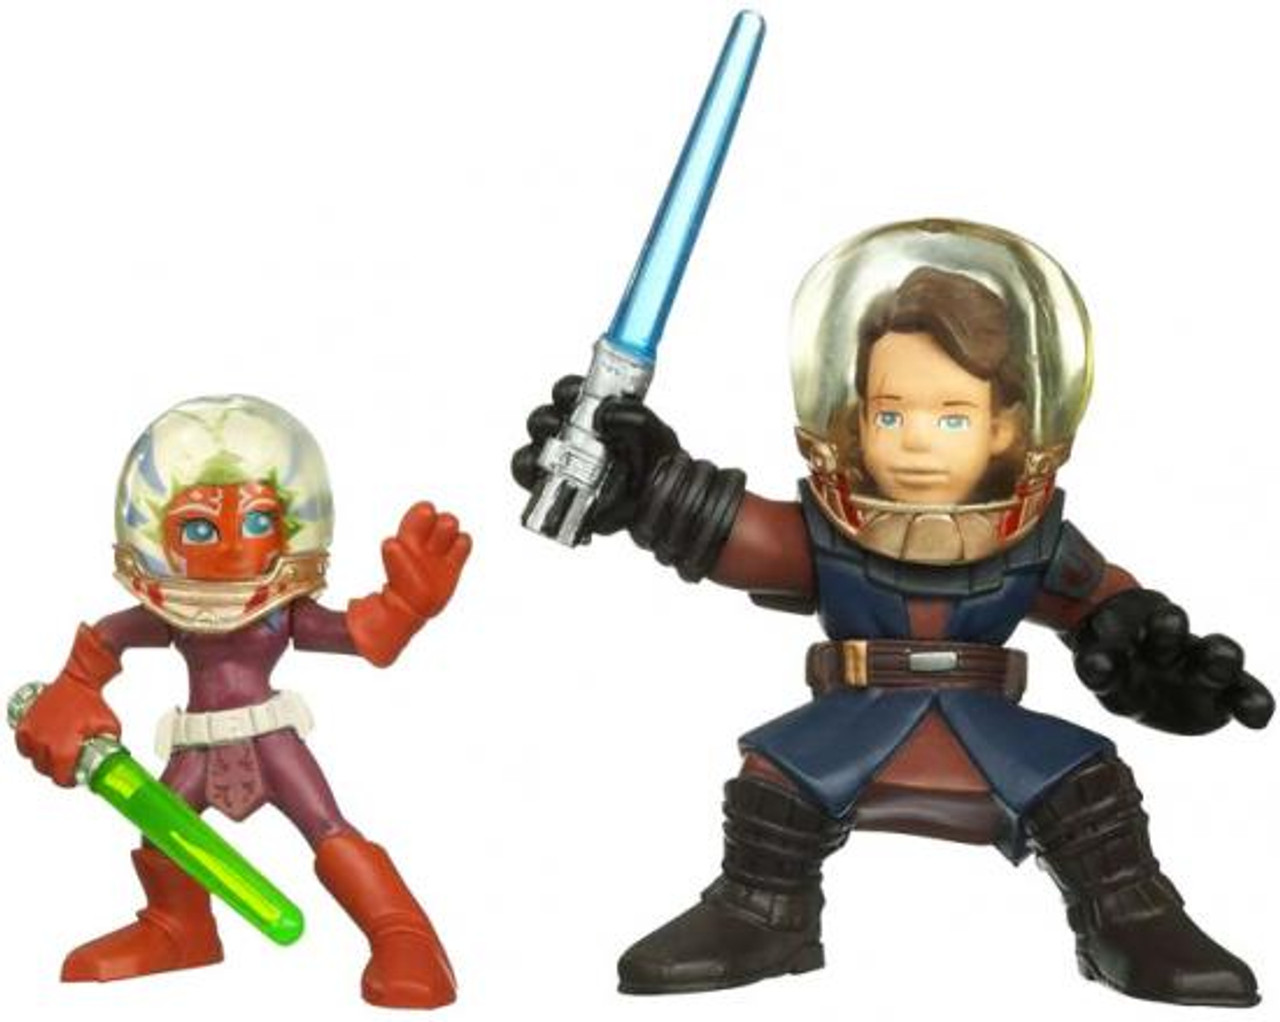 Star Wars The Clone Wars Galactic Heroes 2010 Anakin Skywalker & Ahsoka Tano Mini Figure 2-Pack [Space Helmets]